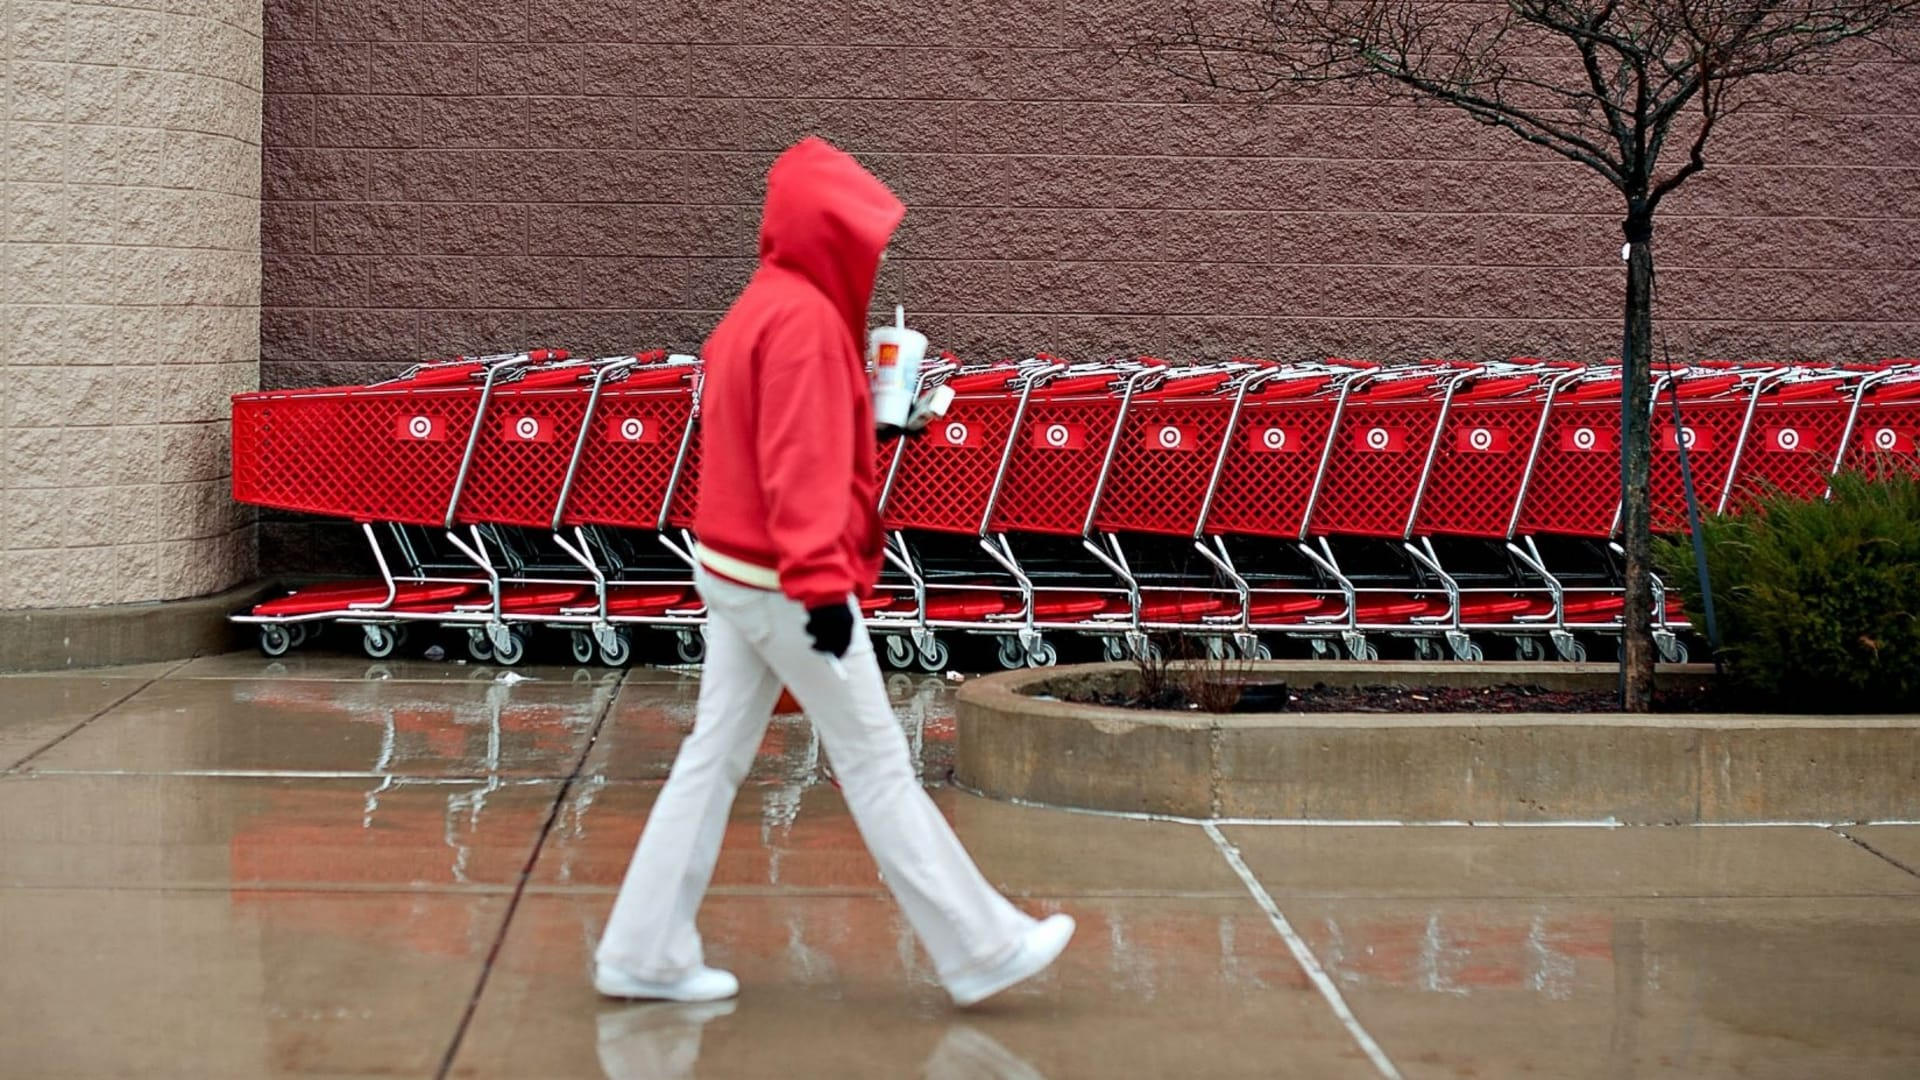 Walmart, Target, and Best Buy All Announced the Same Change. Retail May Never Be the Same